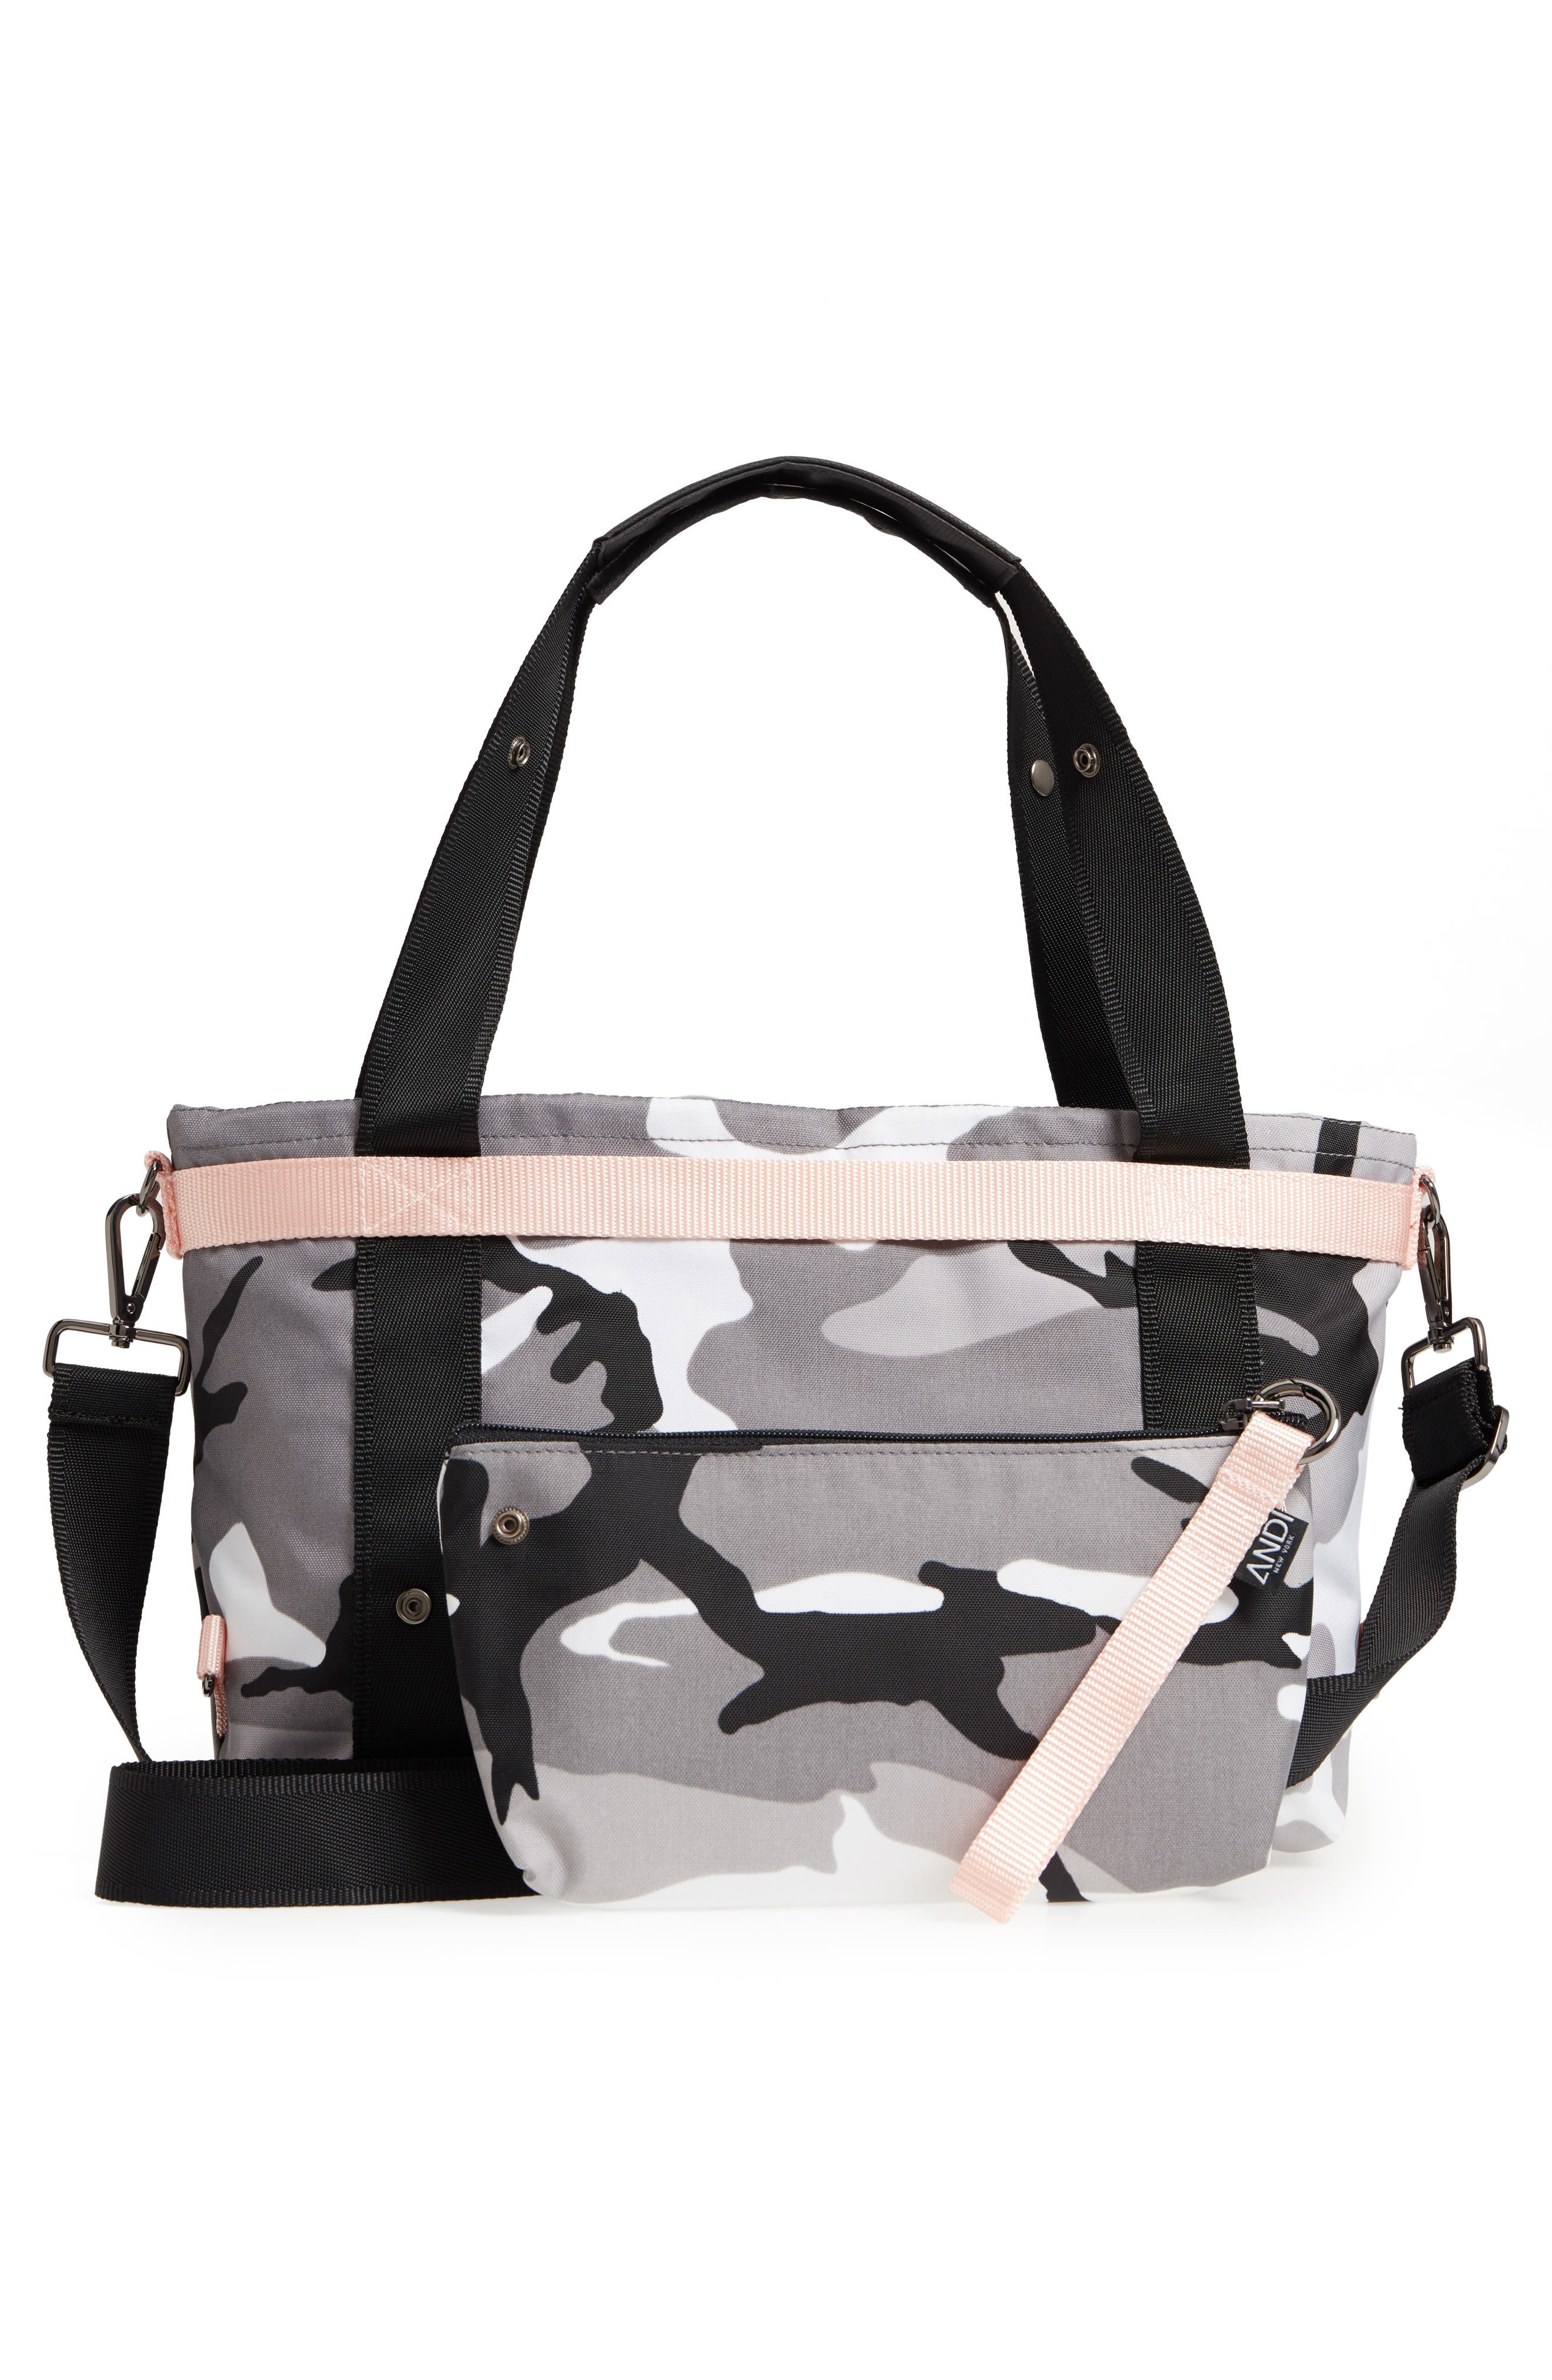 The ANDI Small Convertible Tote,                             Alternate thumbnail 4, color,                             BLACK/ WHITE/ GRAY/ PINK